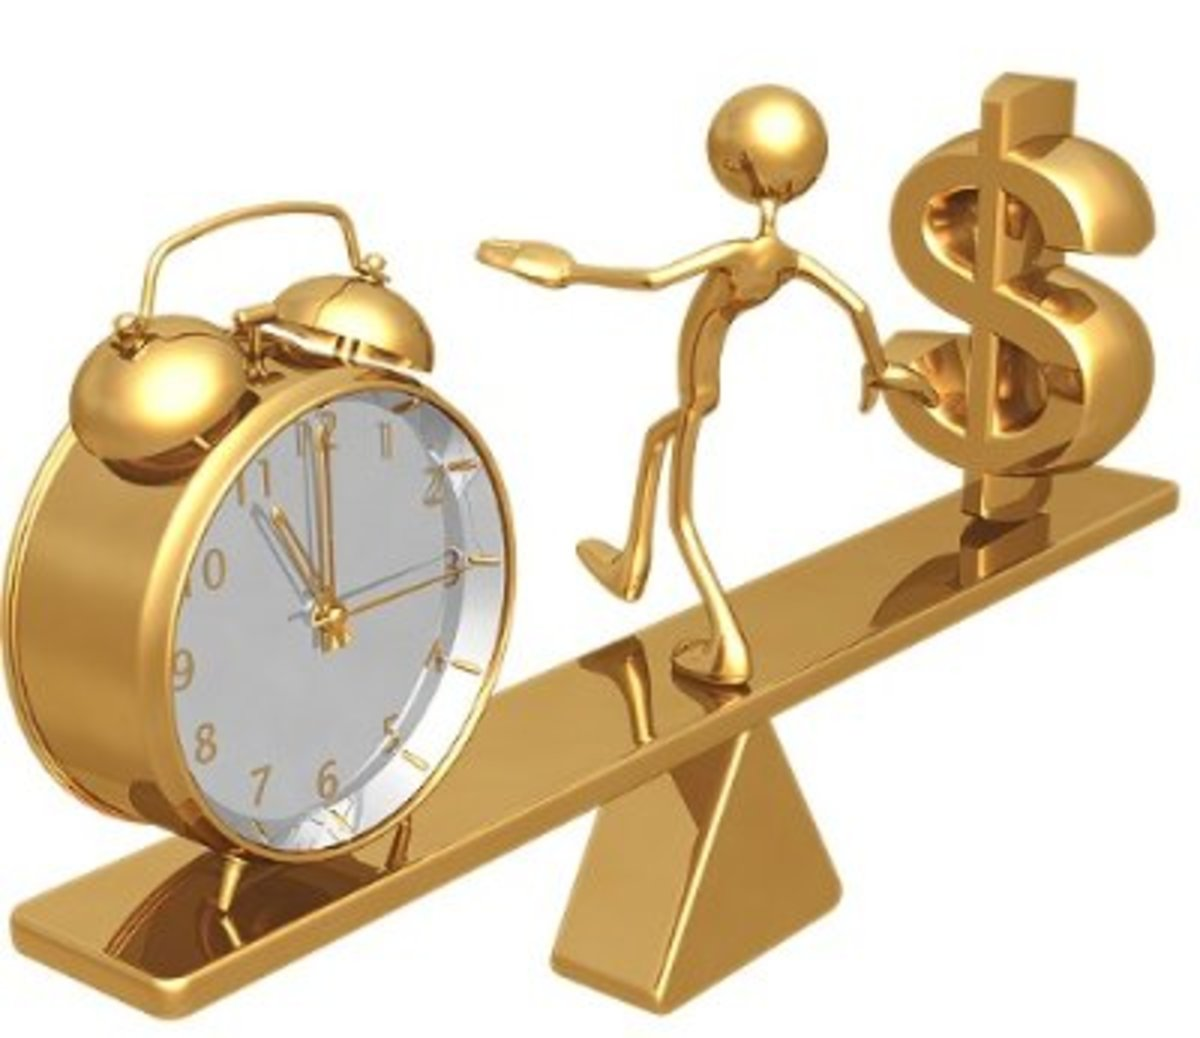 Can money buy time?